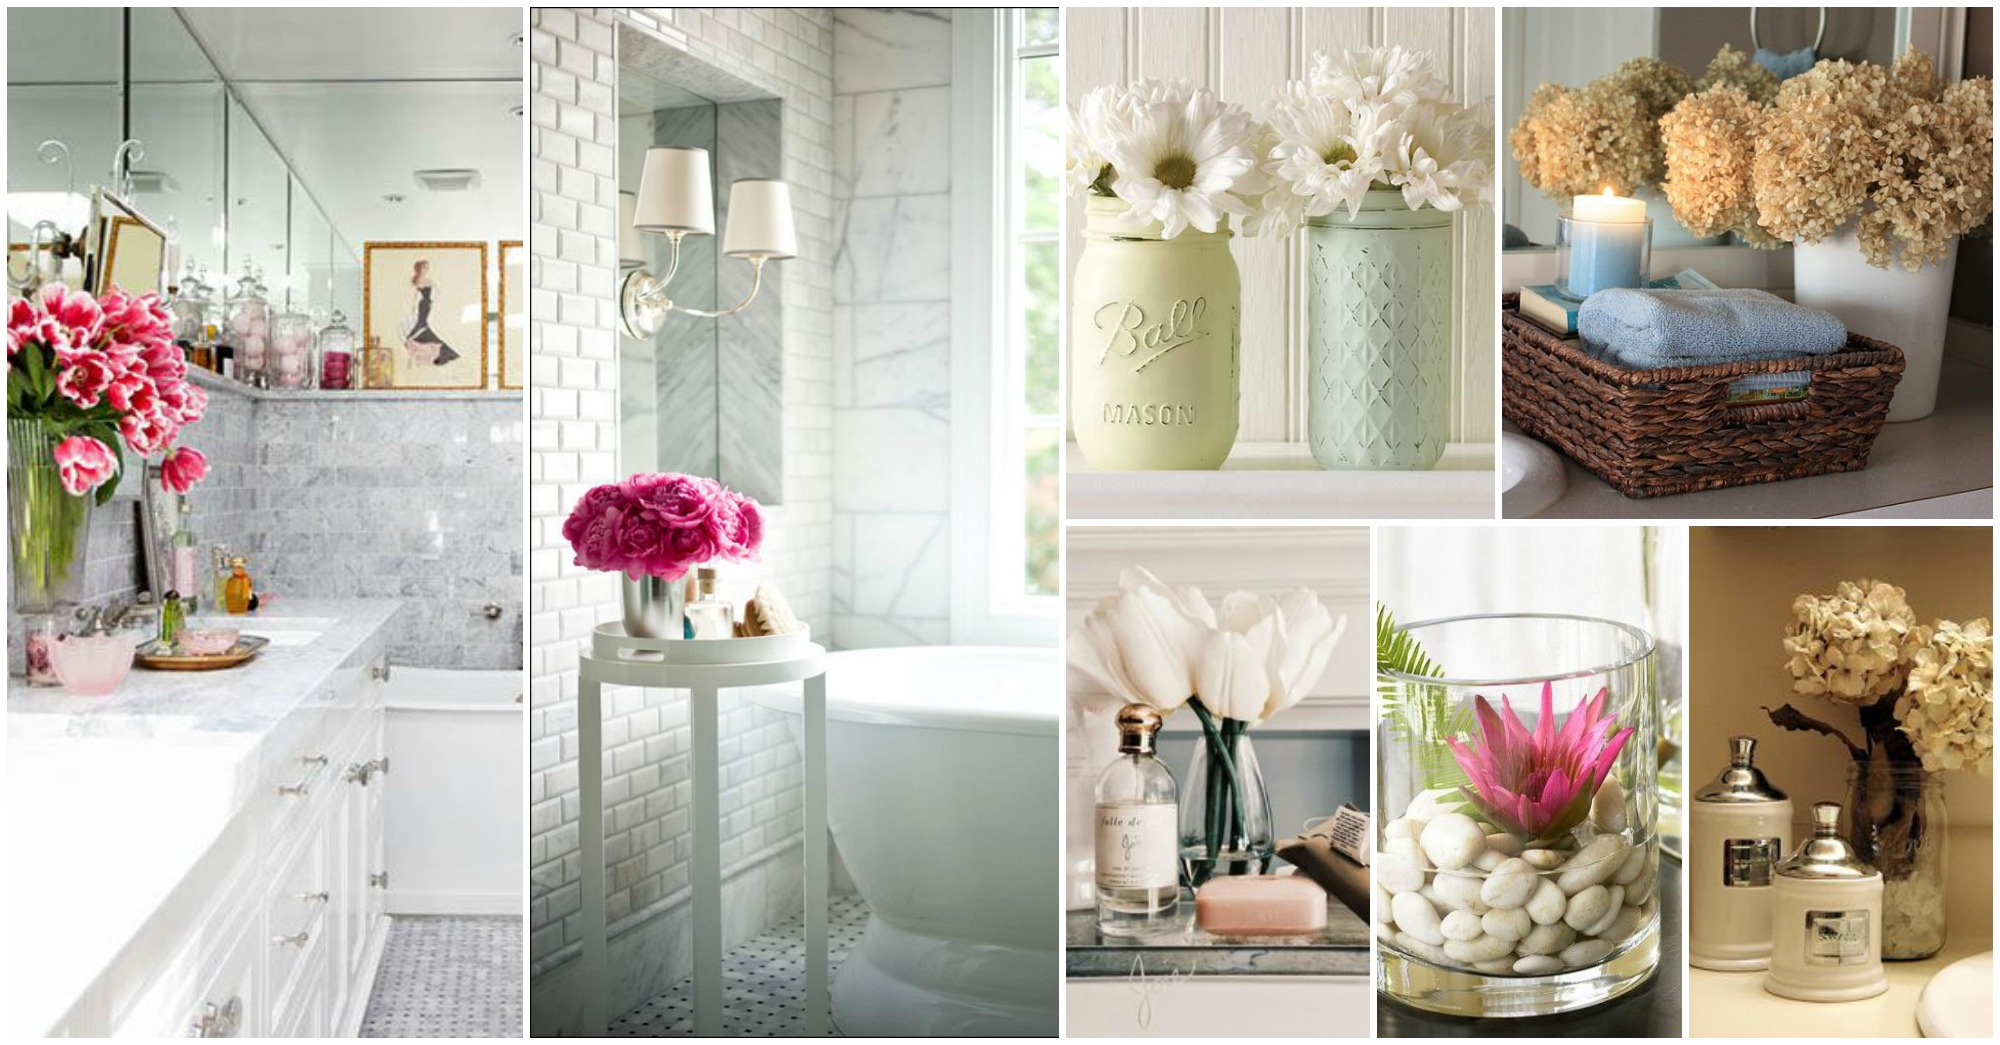 Bathroom decor blossoms xoxo - How to decorate your bathroom ...